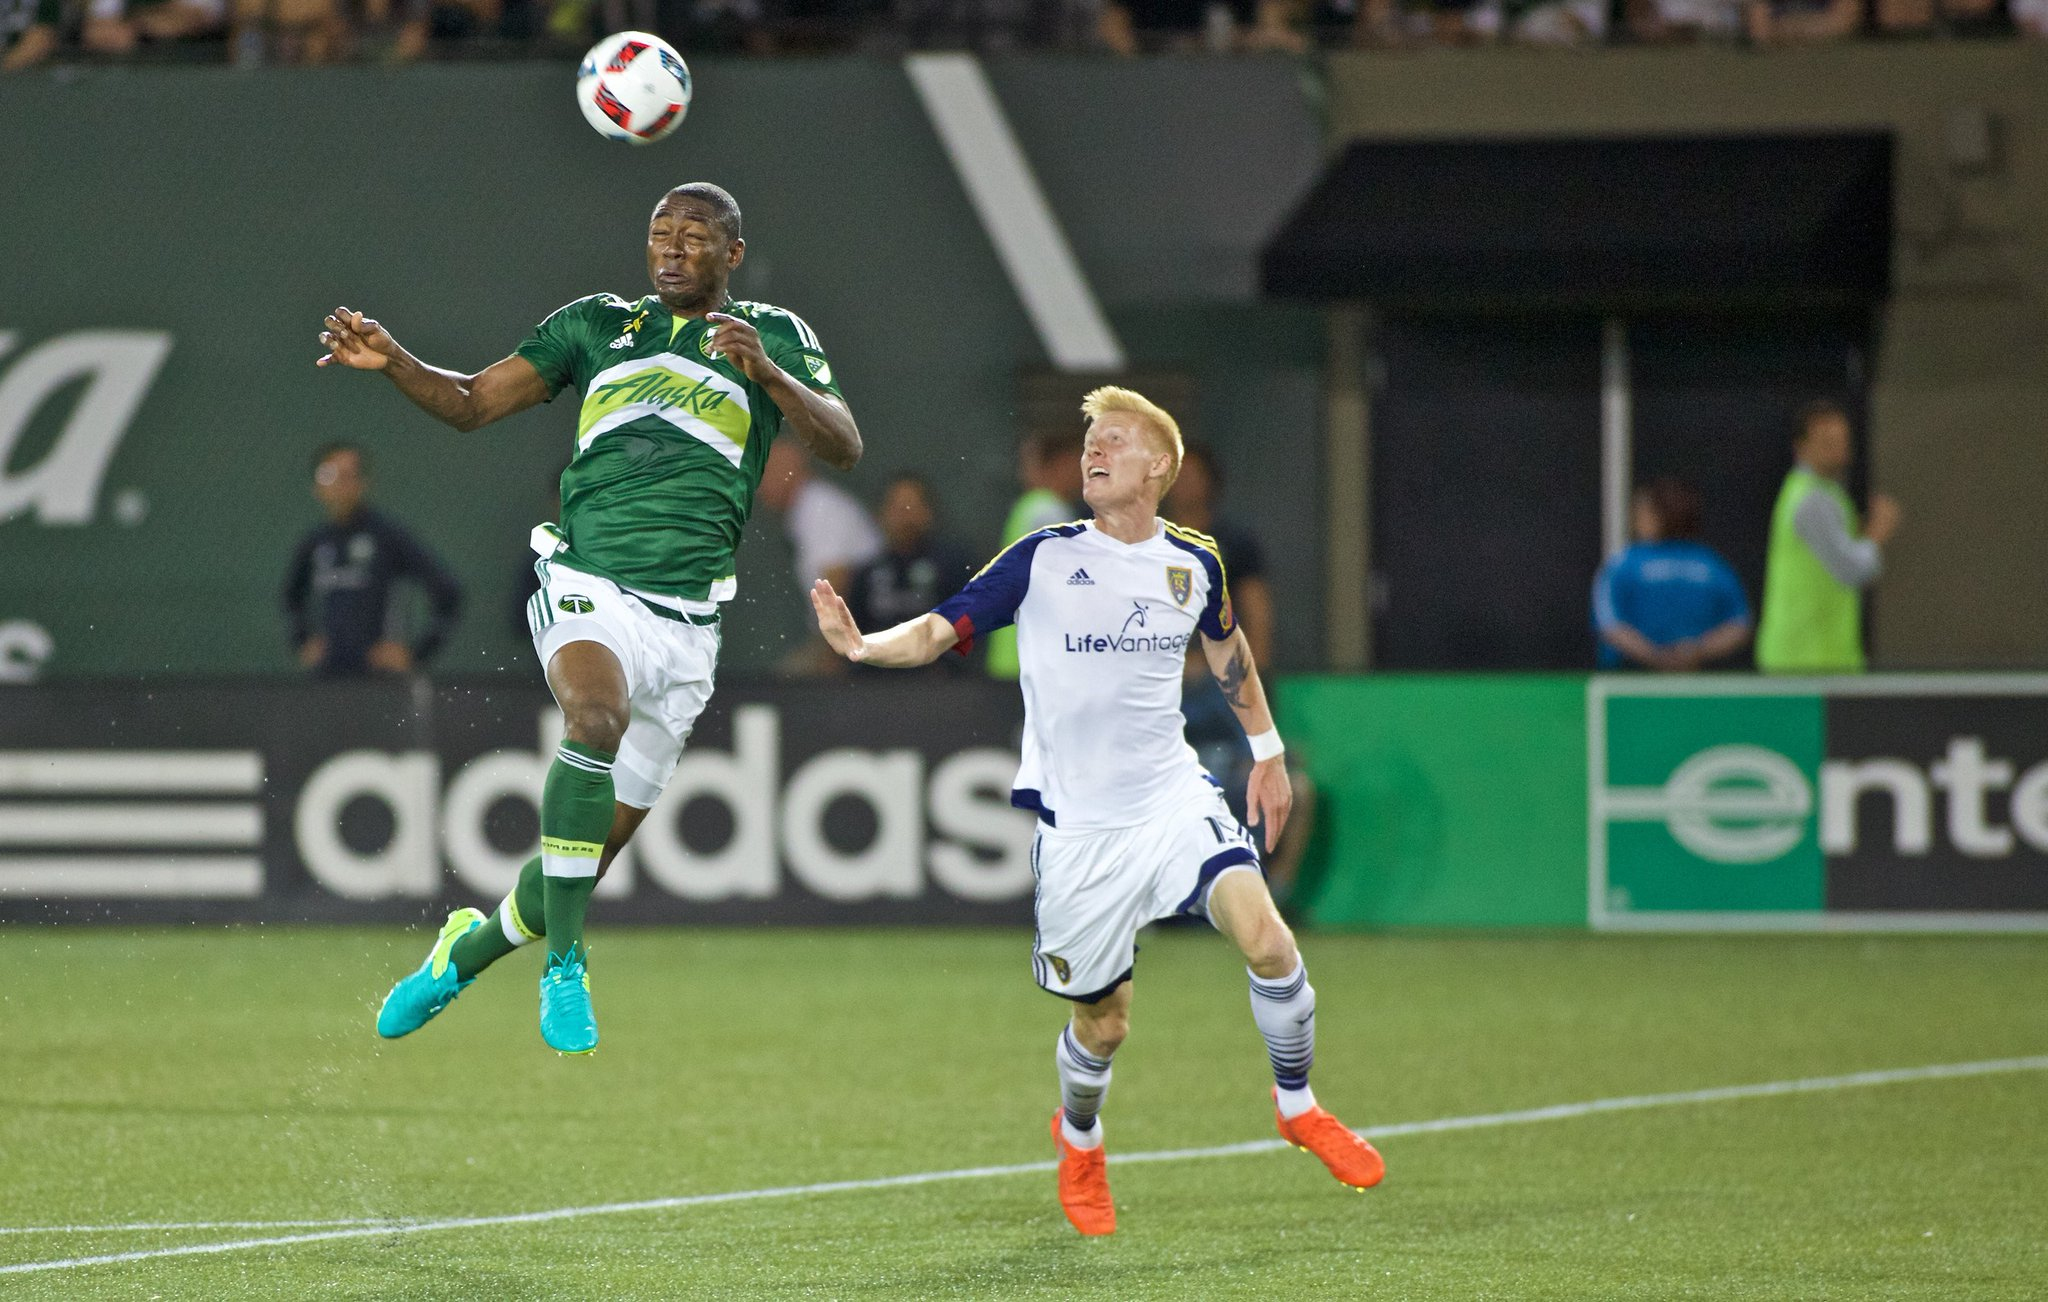 Adi Scores As Portland Timbers Lose Champions League Clash